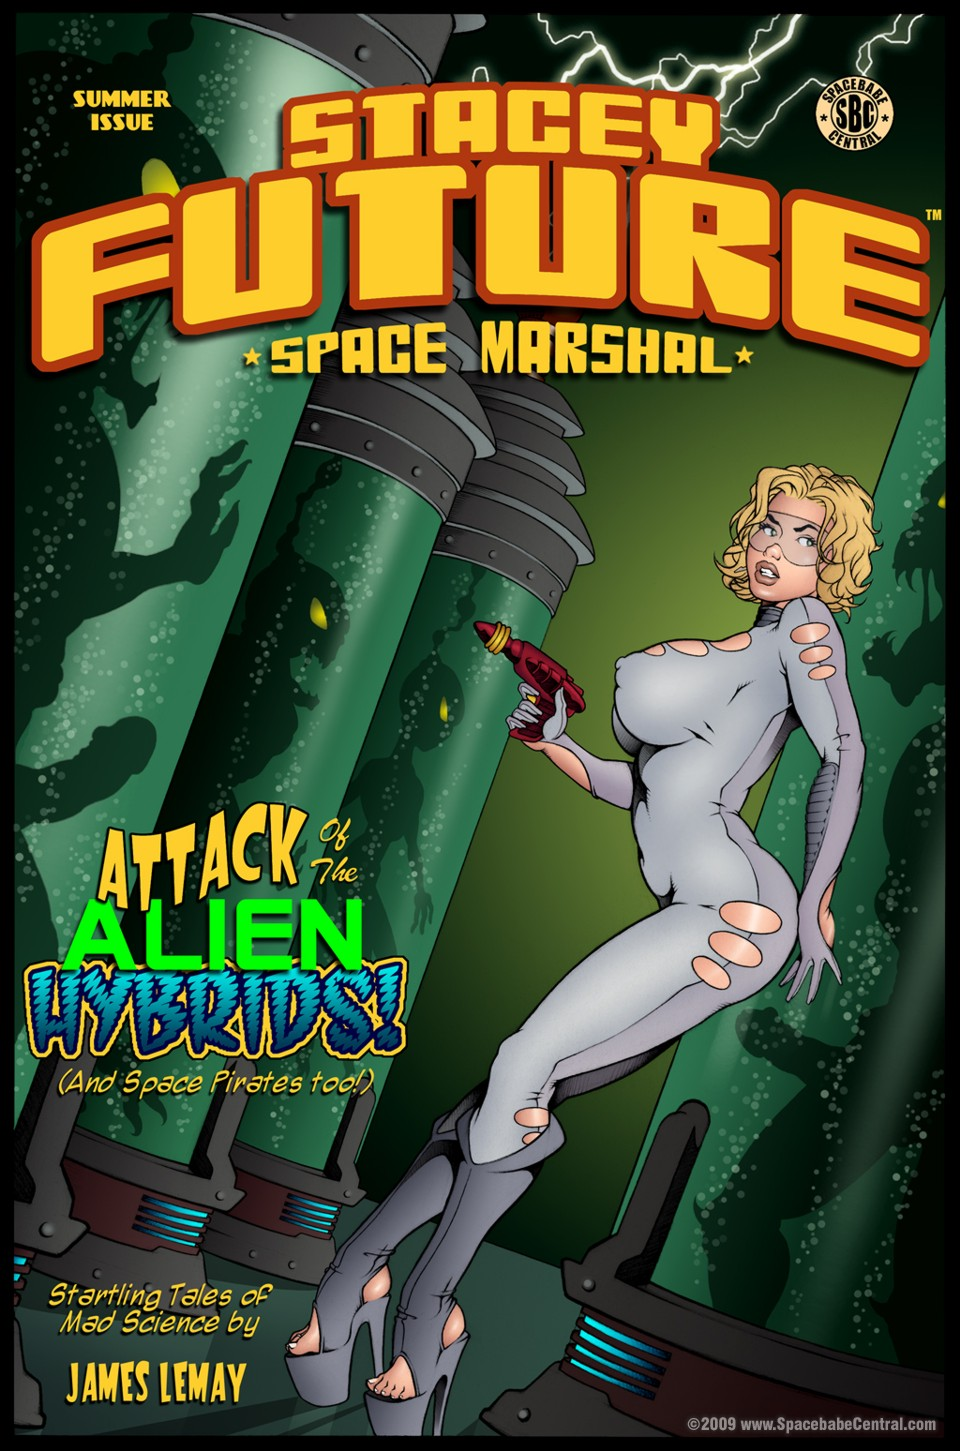 Stacey Future-Space Marshal 2- James Lemay